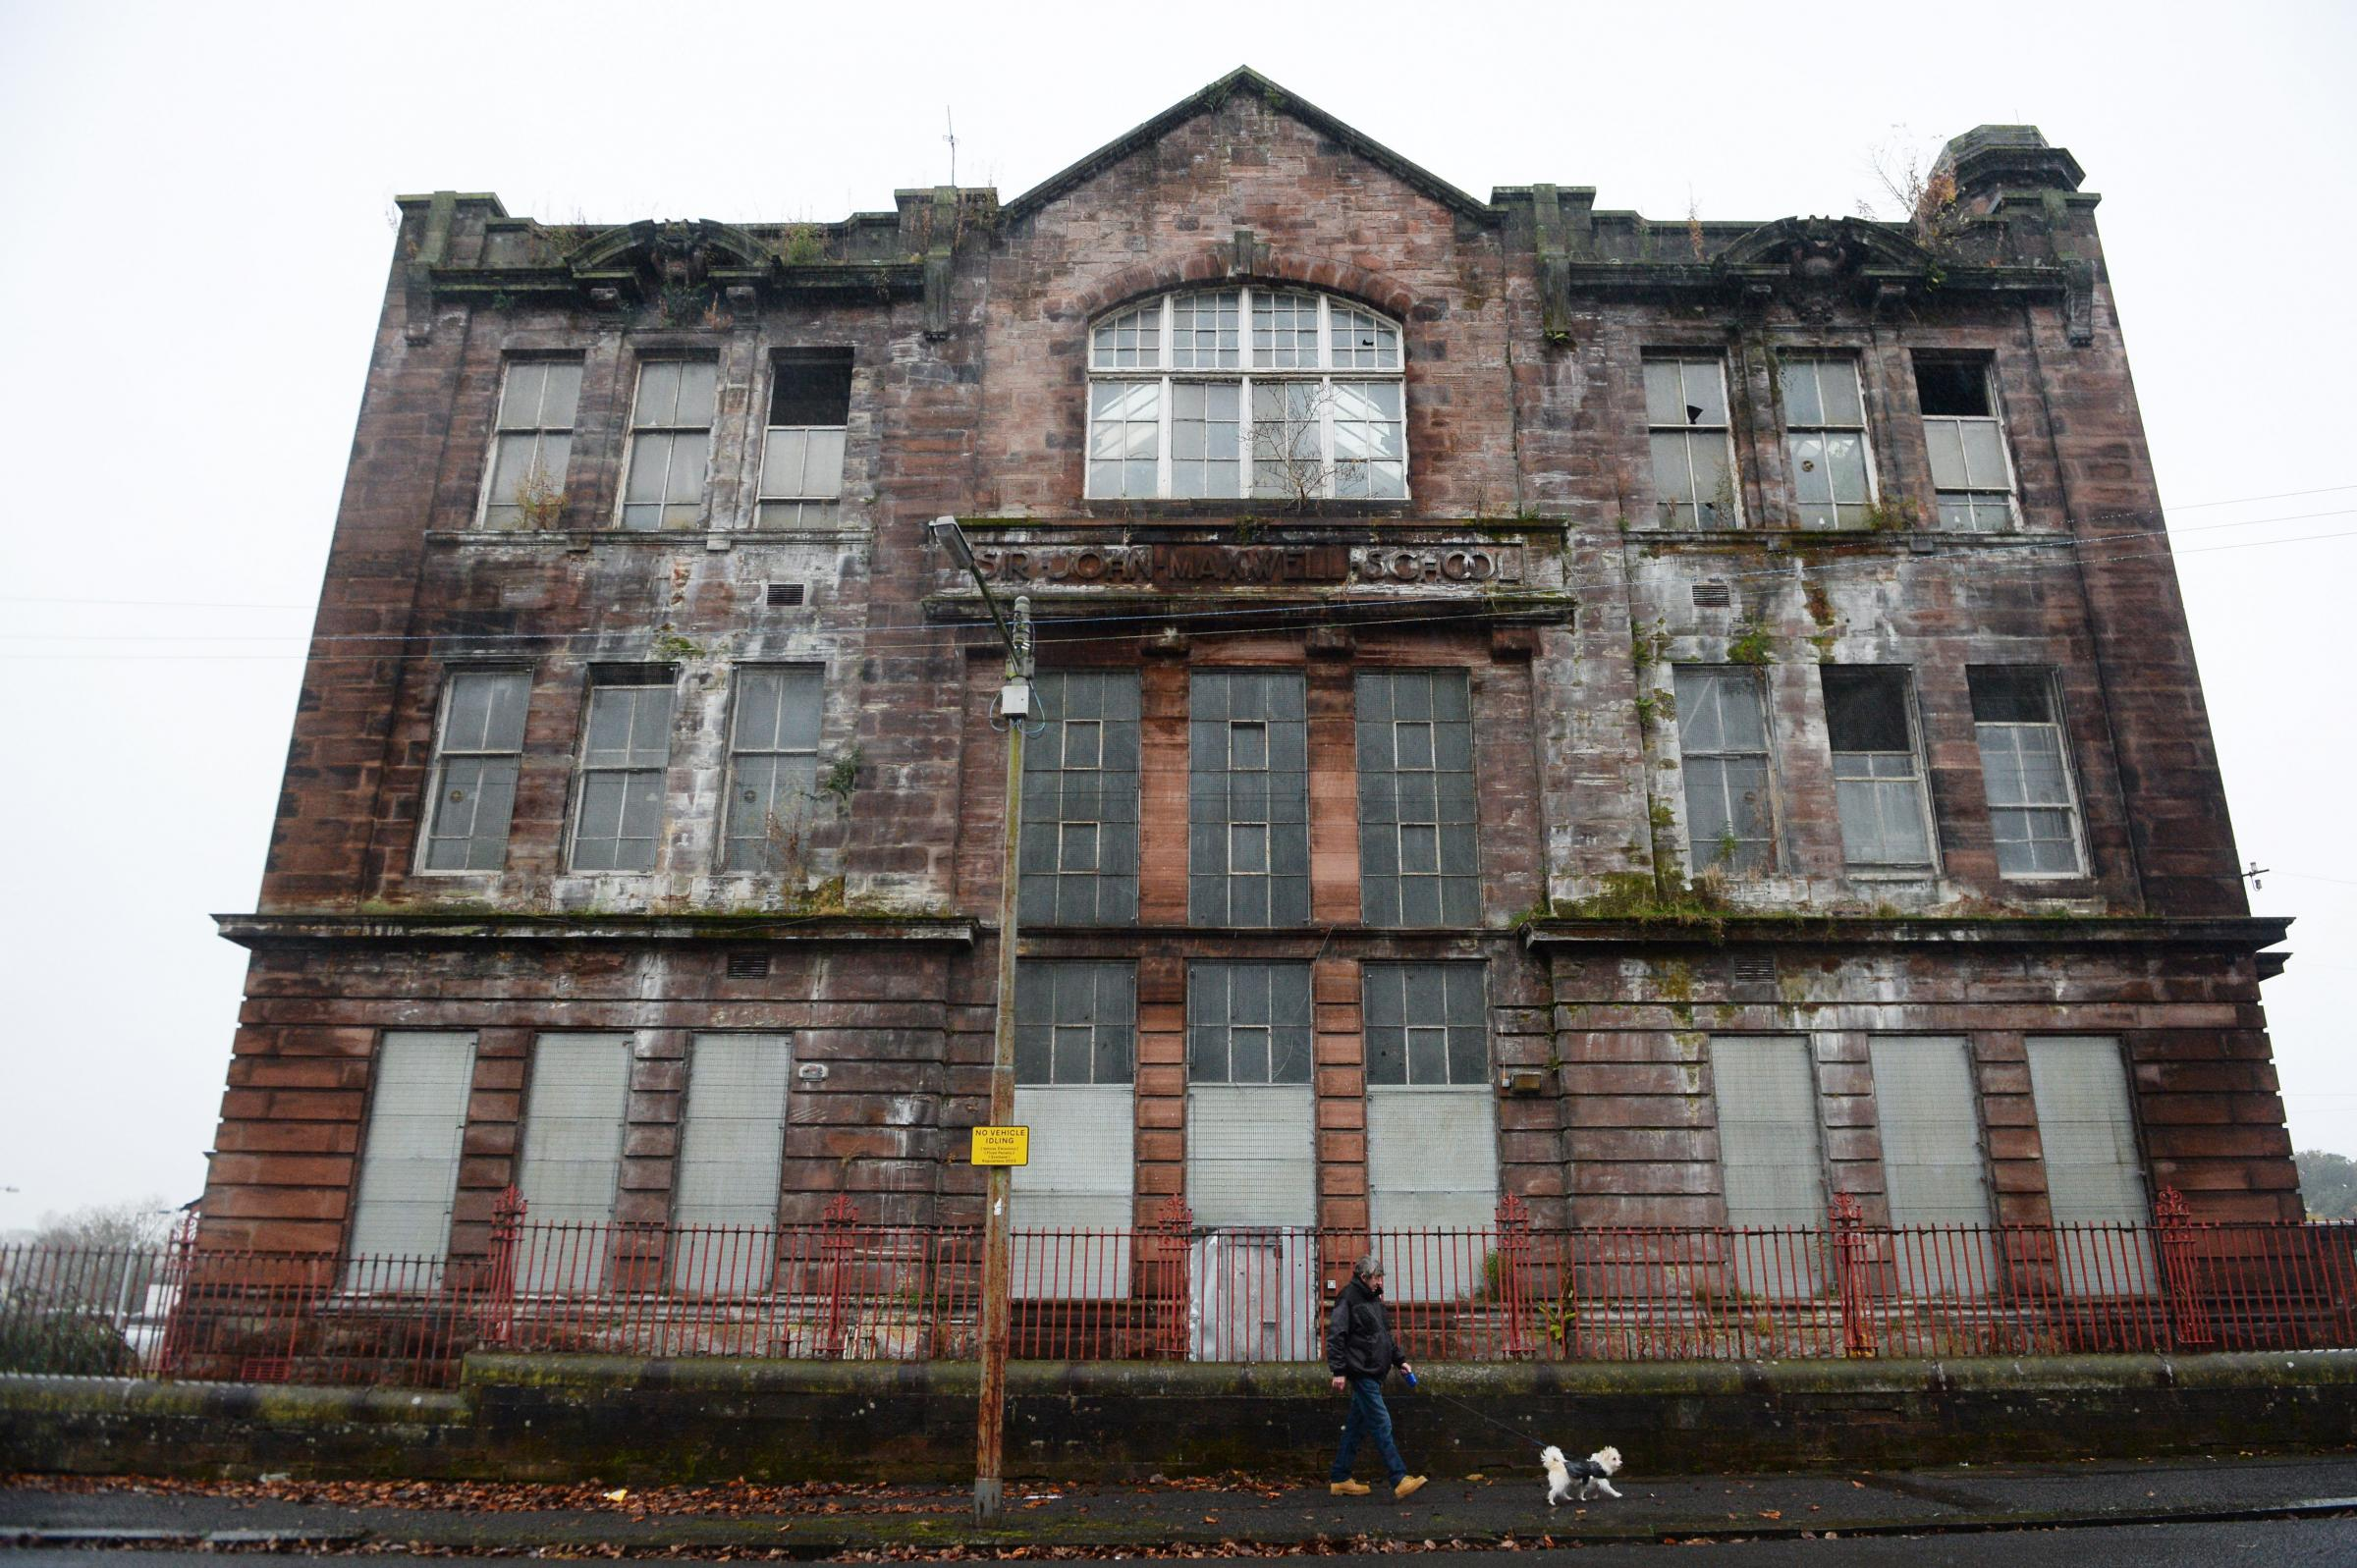 The school building has been empty and derelict since 2011 and faces demolition